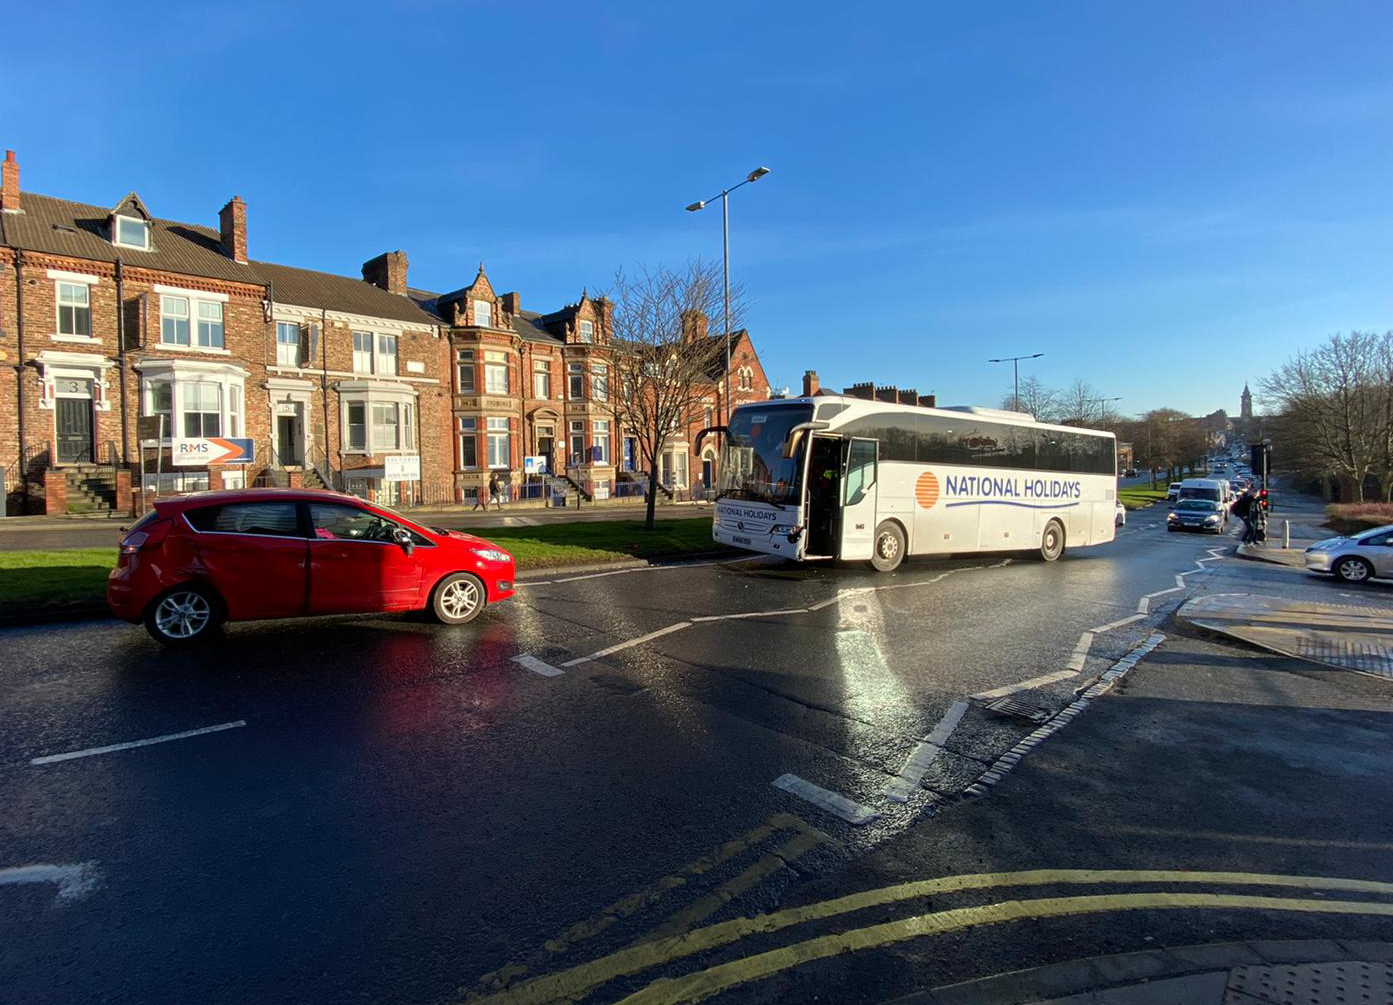 Car and bus involved in crash outside Sainsbury's in Darlington town centre